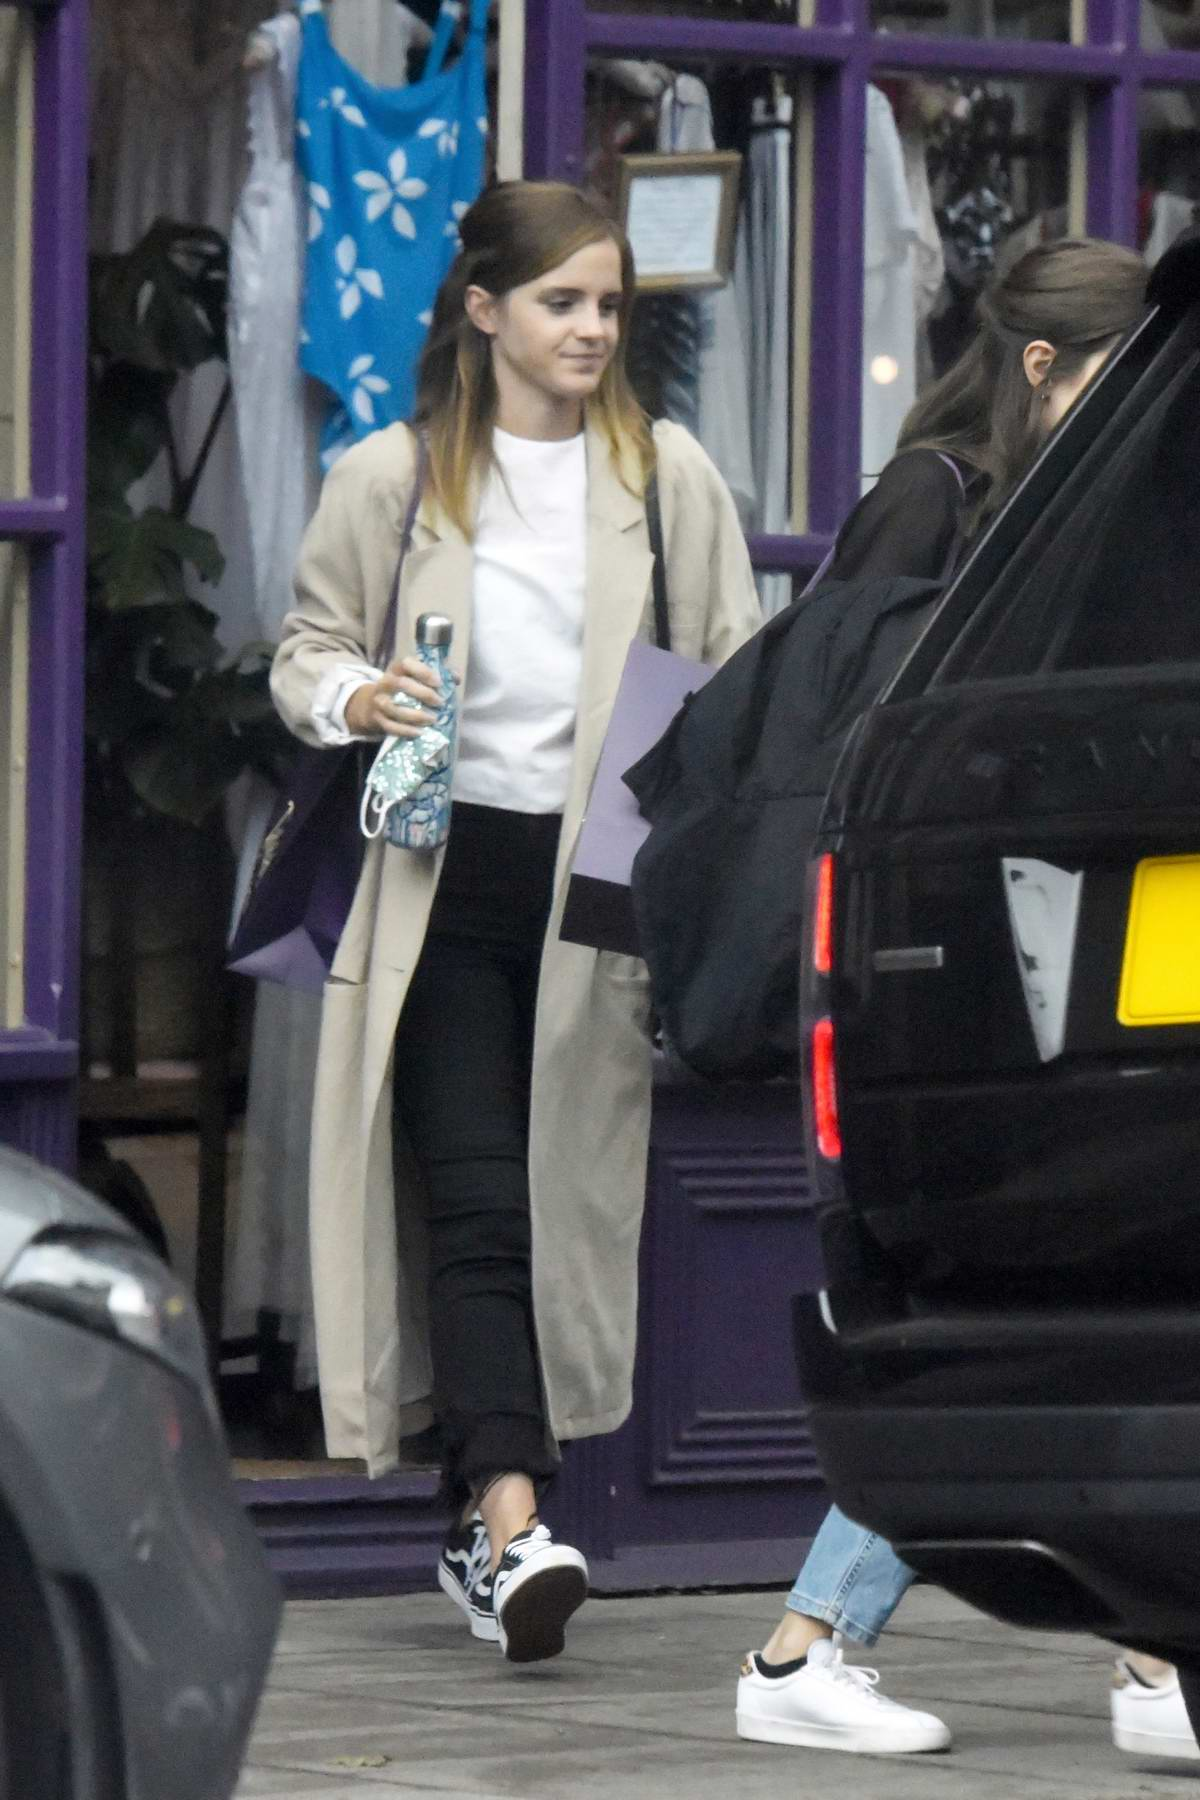 Emma Watson seen out shopping for lingerie at Tallulah Lingerie in North London, UK